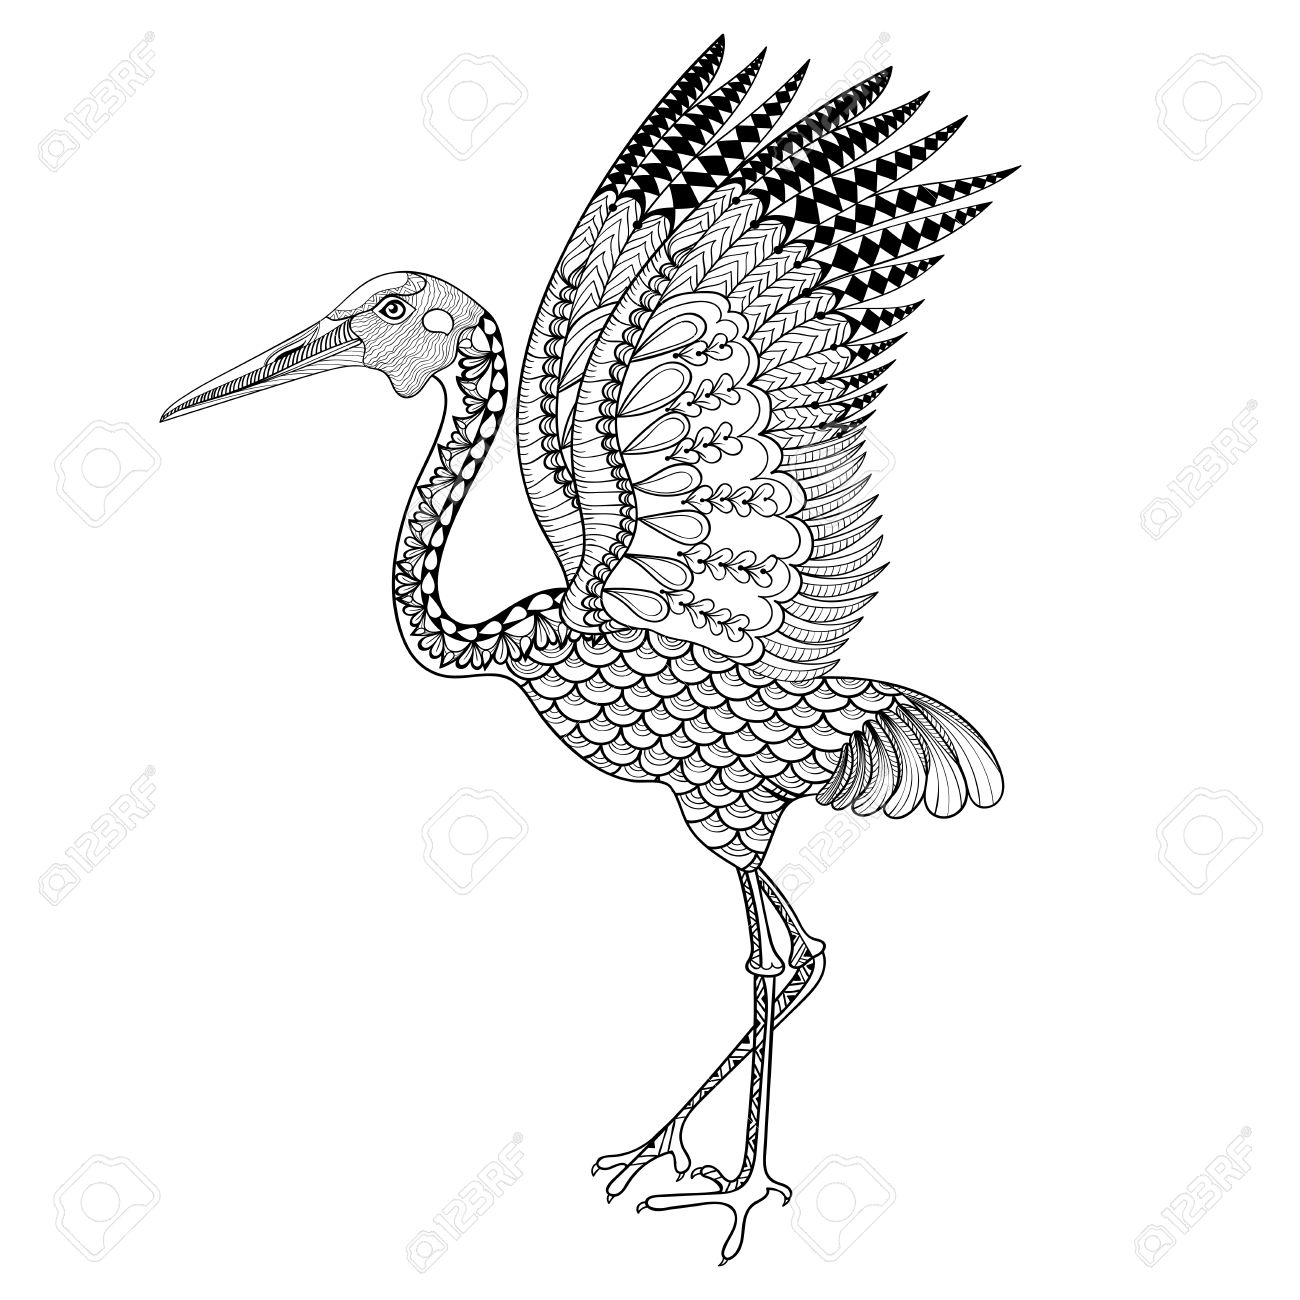 Chinese Crane Drawing